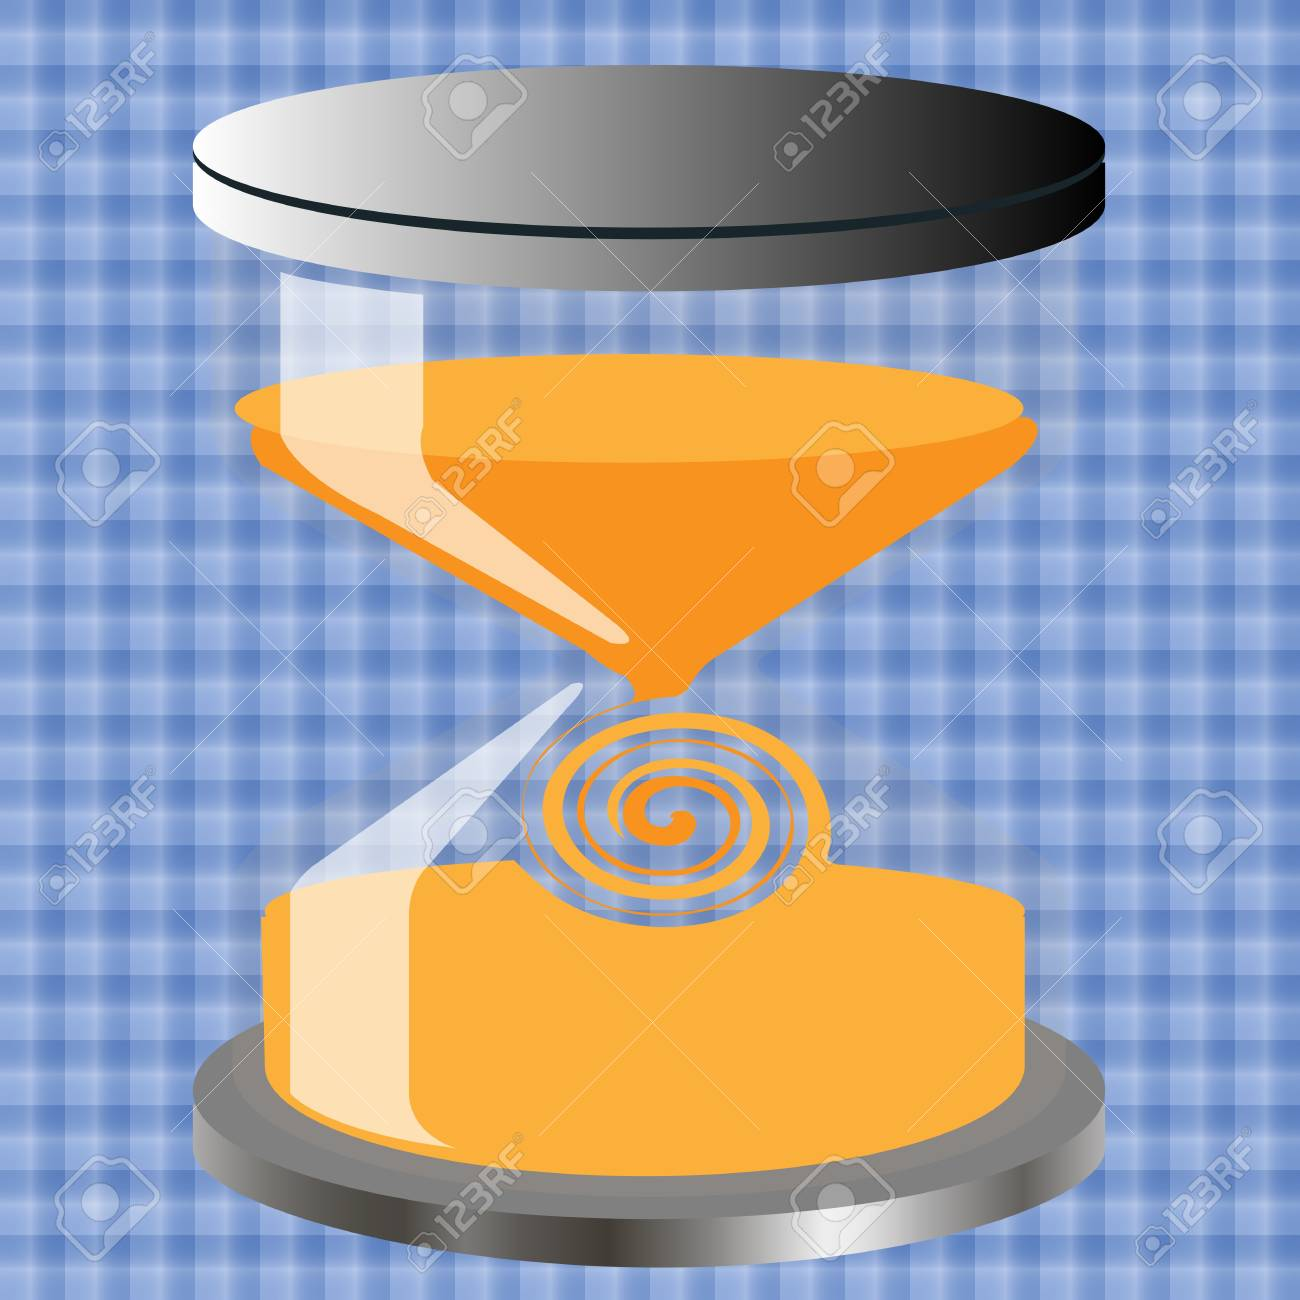 Decorative hourglass against a background of blue tiles Stock Vector - 13770049